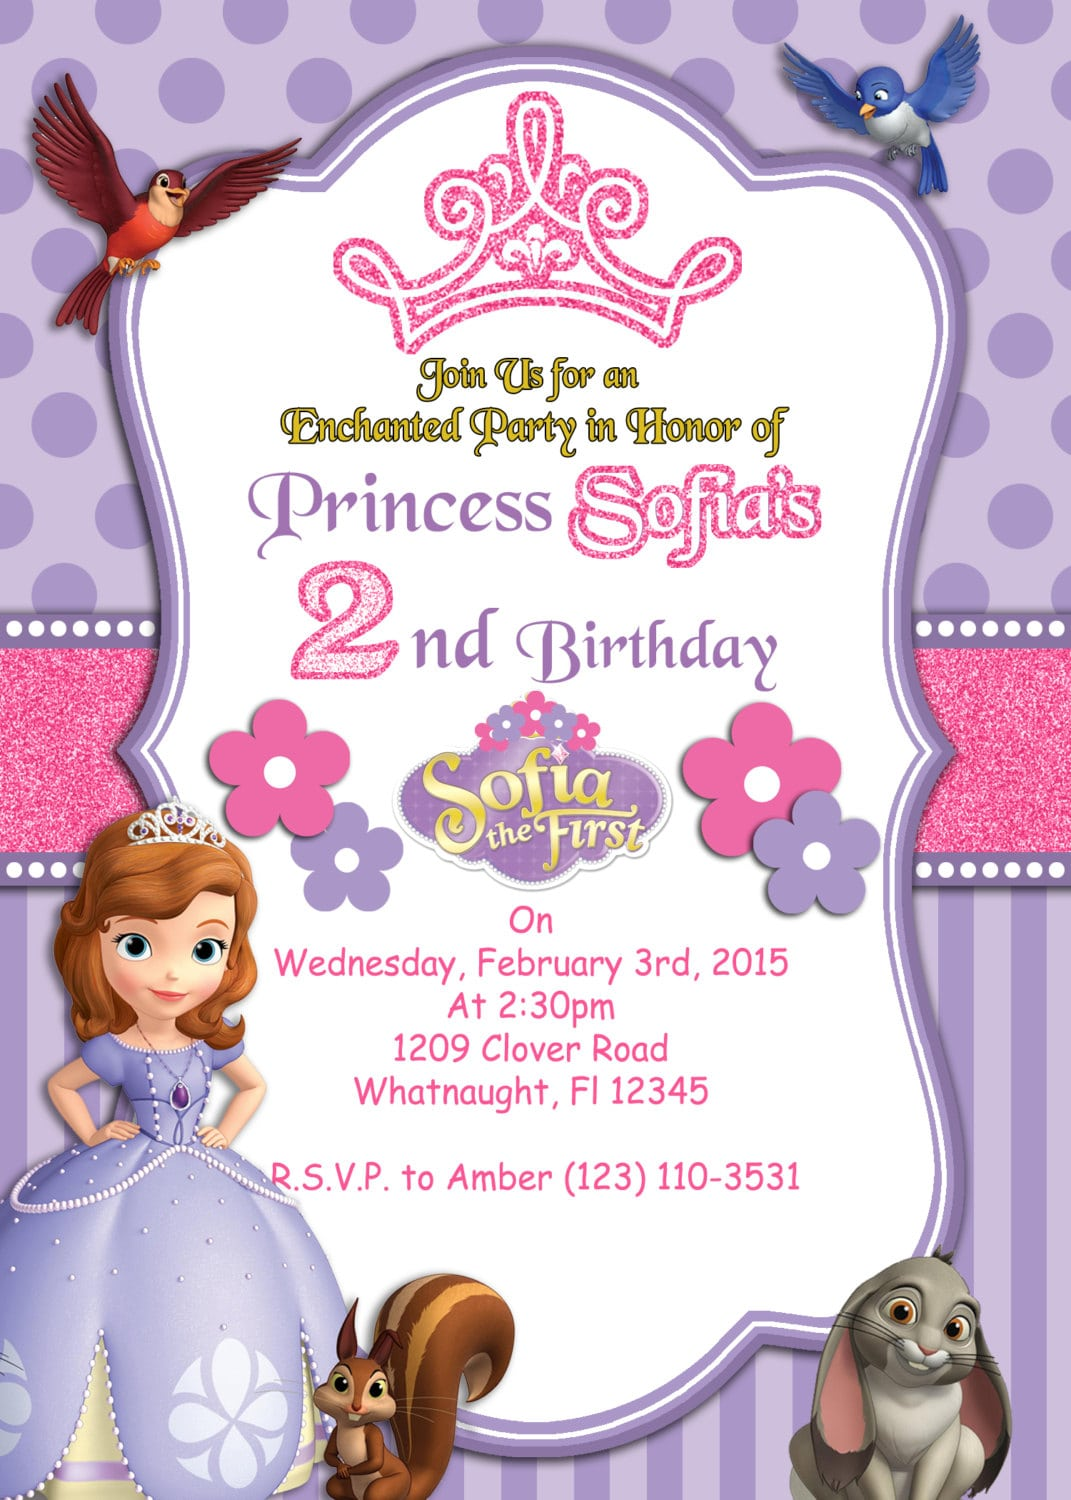 Sofia The First Birthday Party Invitation, Free Thank You Card